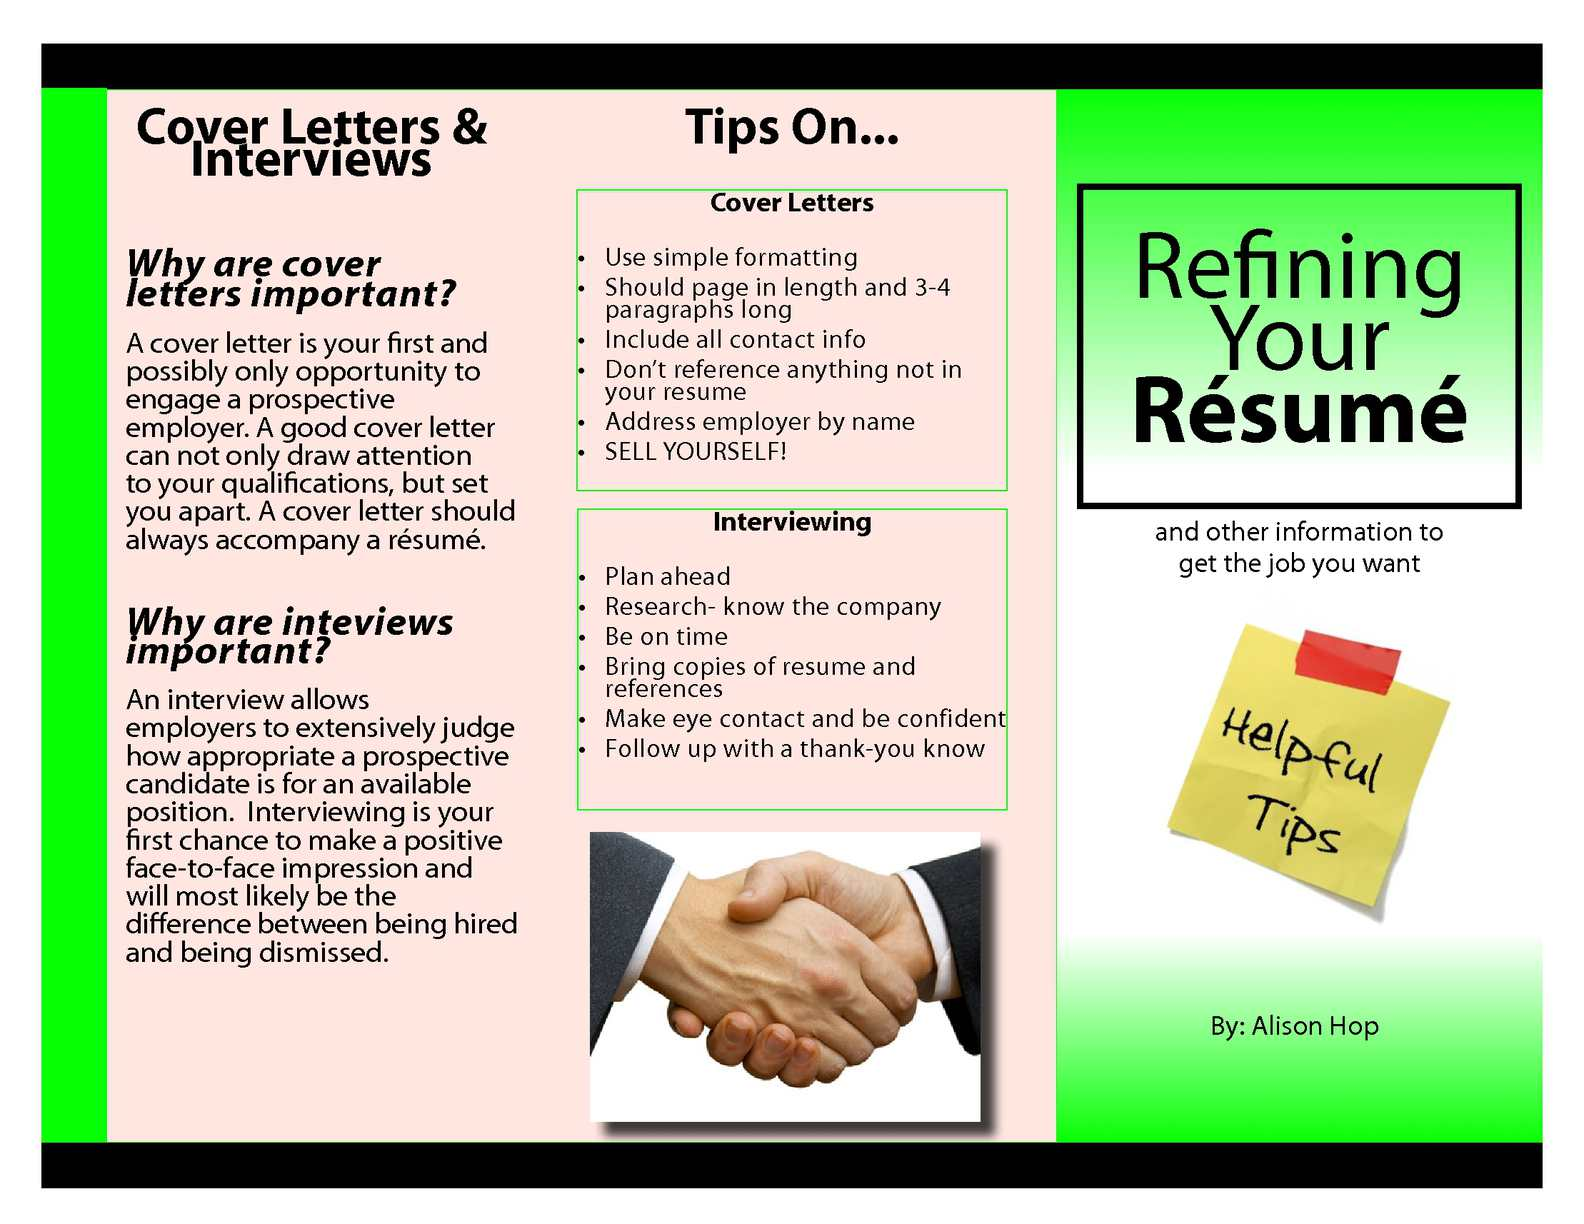 Bring Resume To Interview Calaméo How To Refine Your Resume Brochure